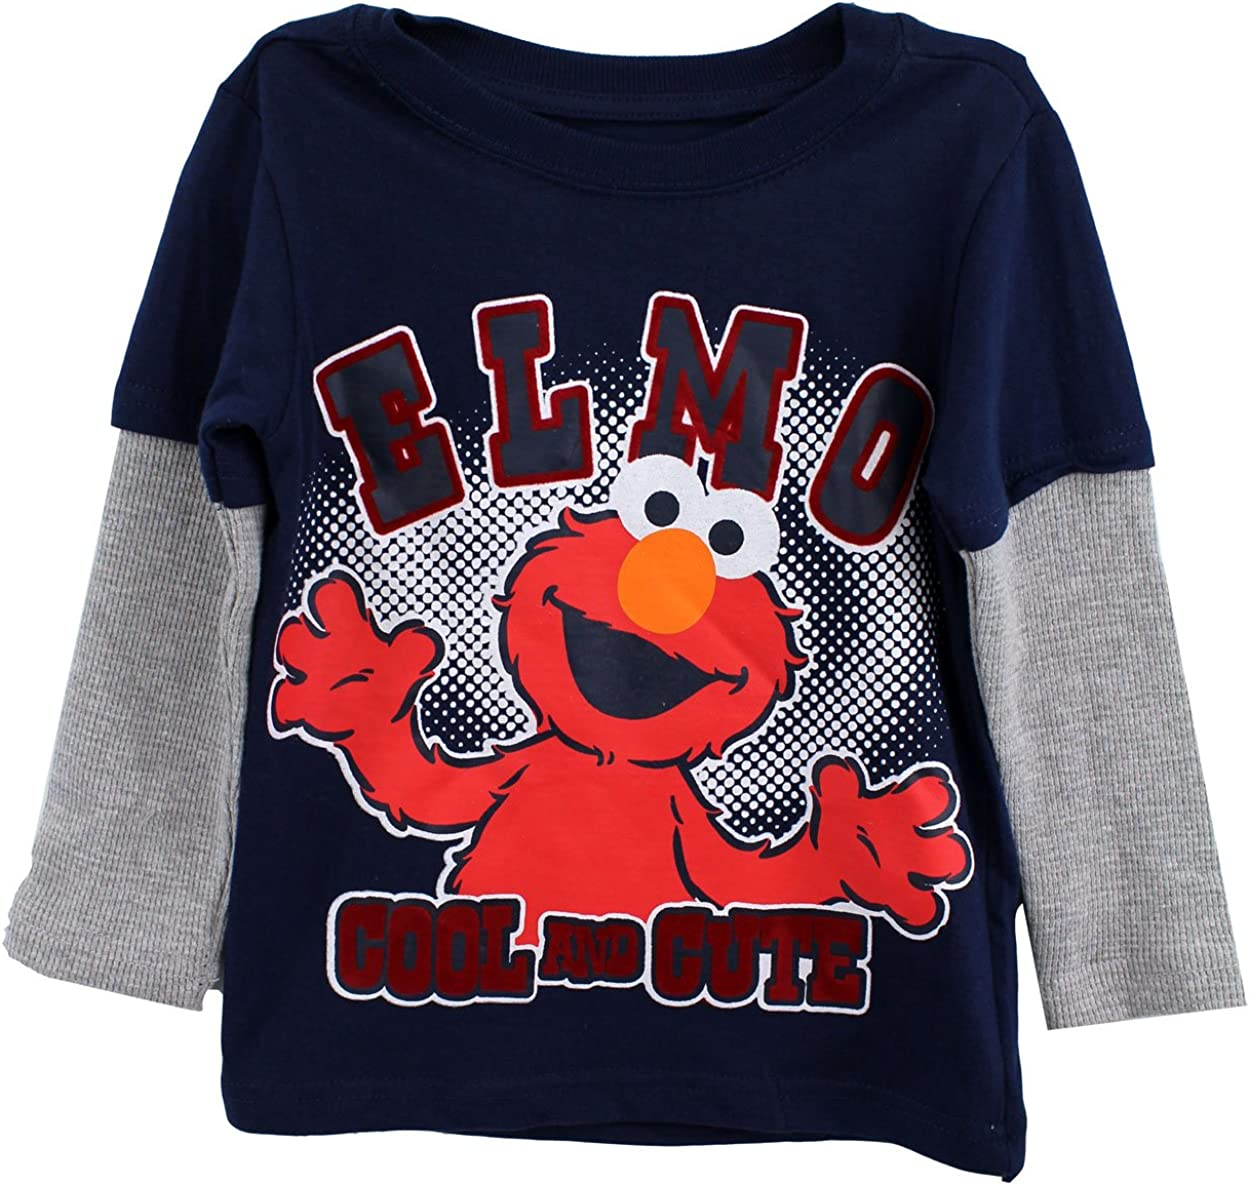 Elmo Toddler Boys Long Sleeve Shirt Cool and Cute Navy Tee